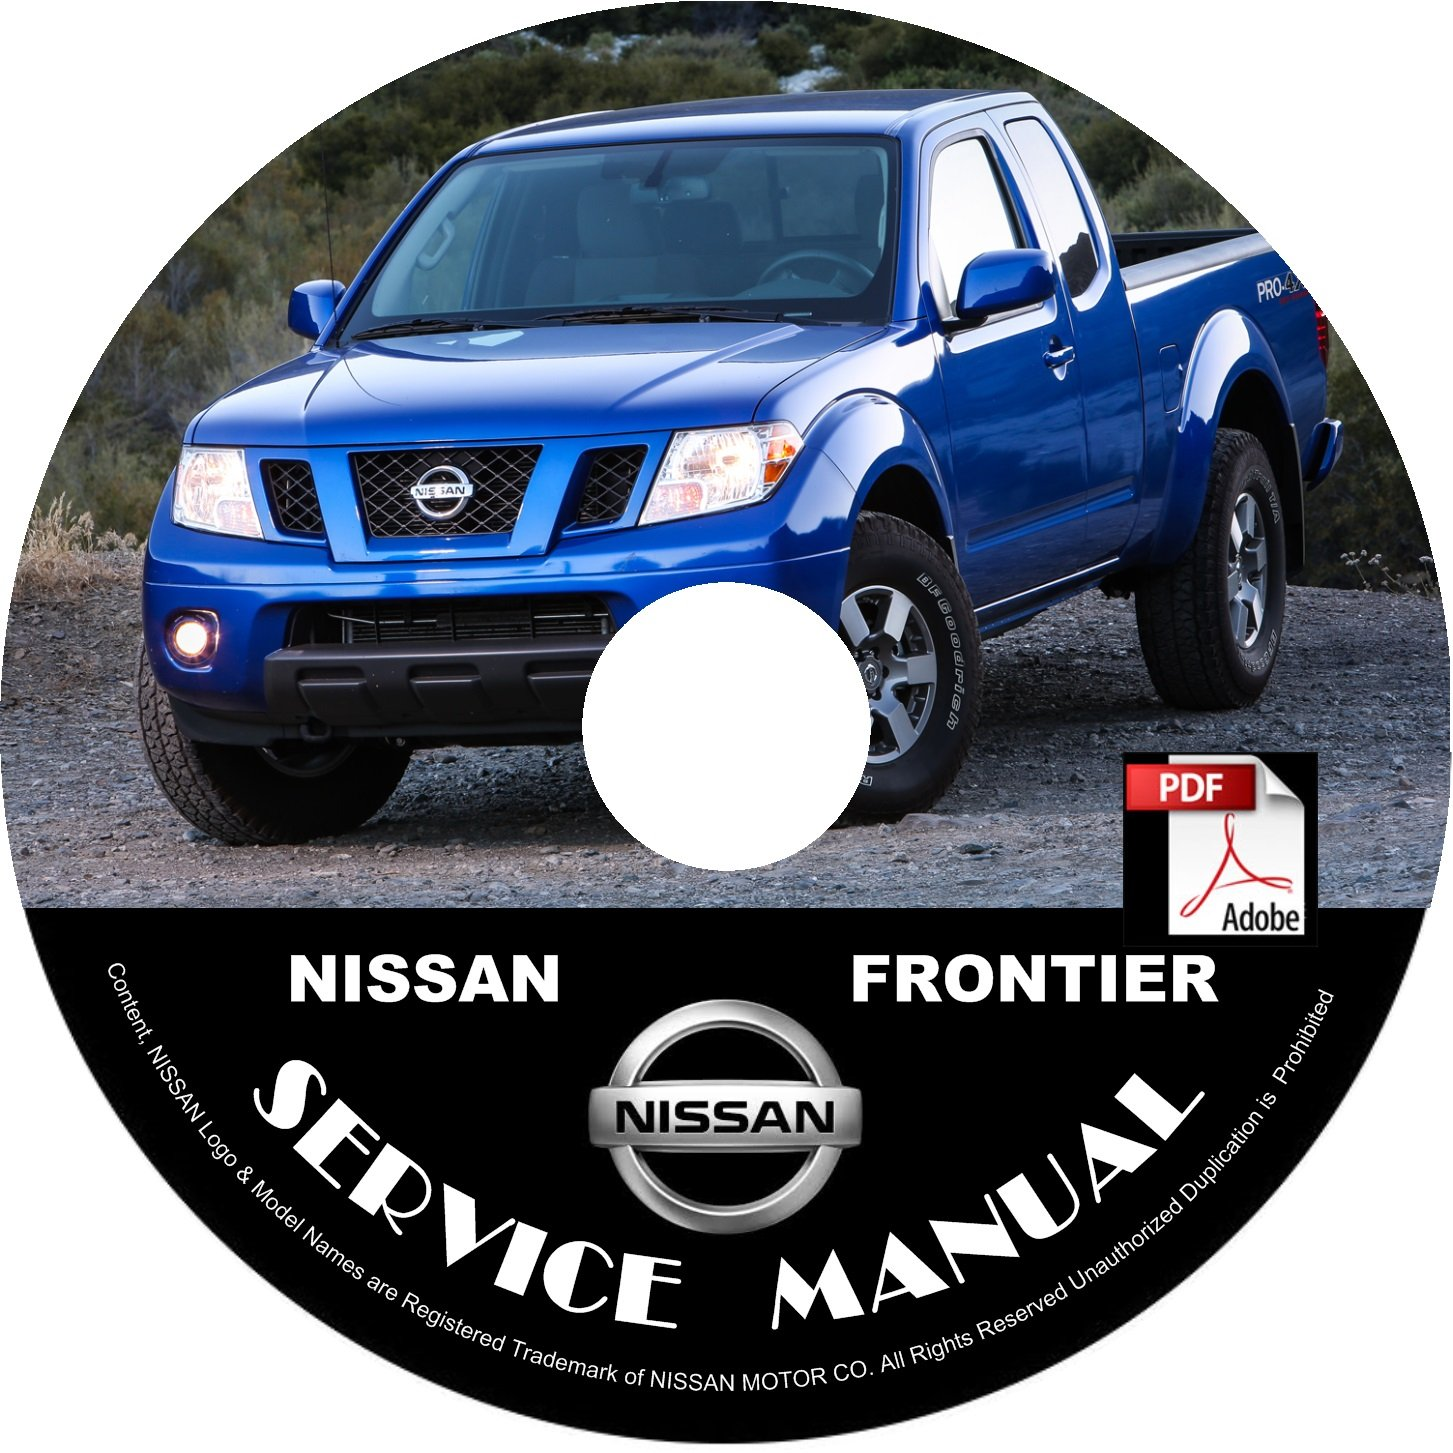 2008 Nissan Frontier Service Repair Shop Manual on CD Fix Rebuild '08